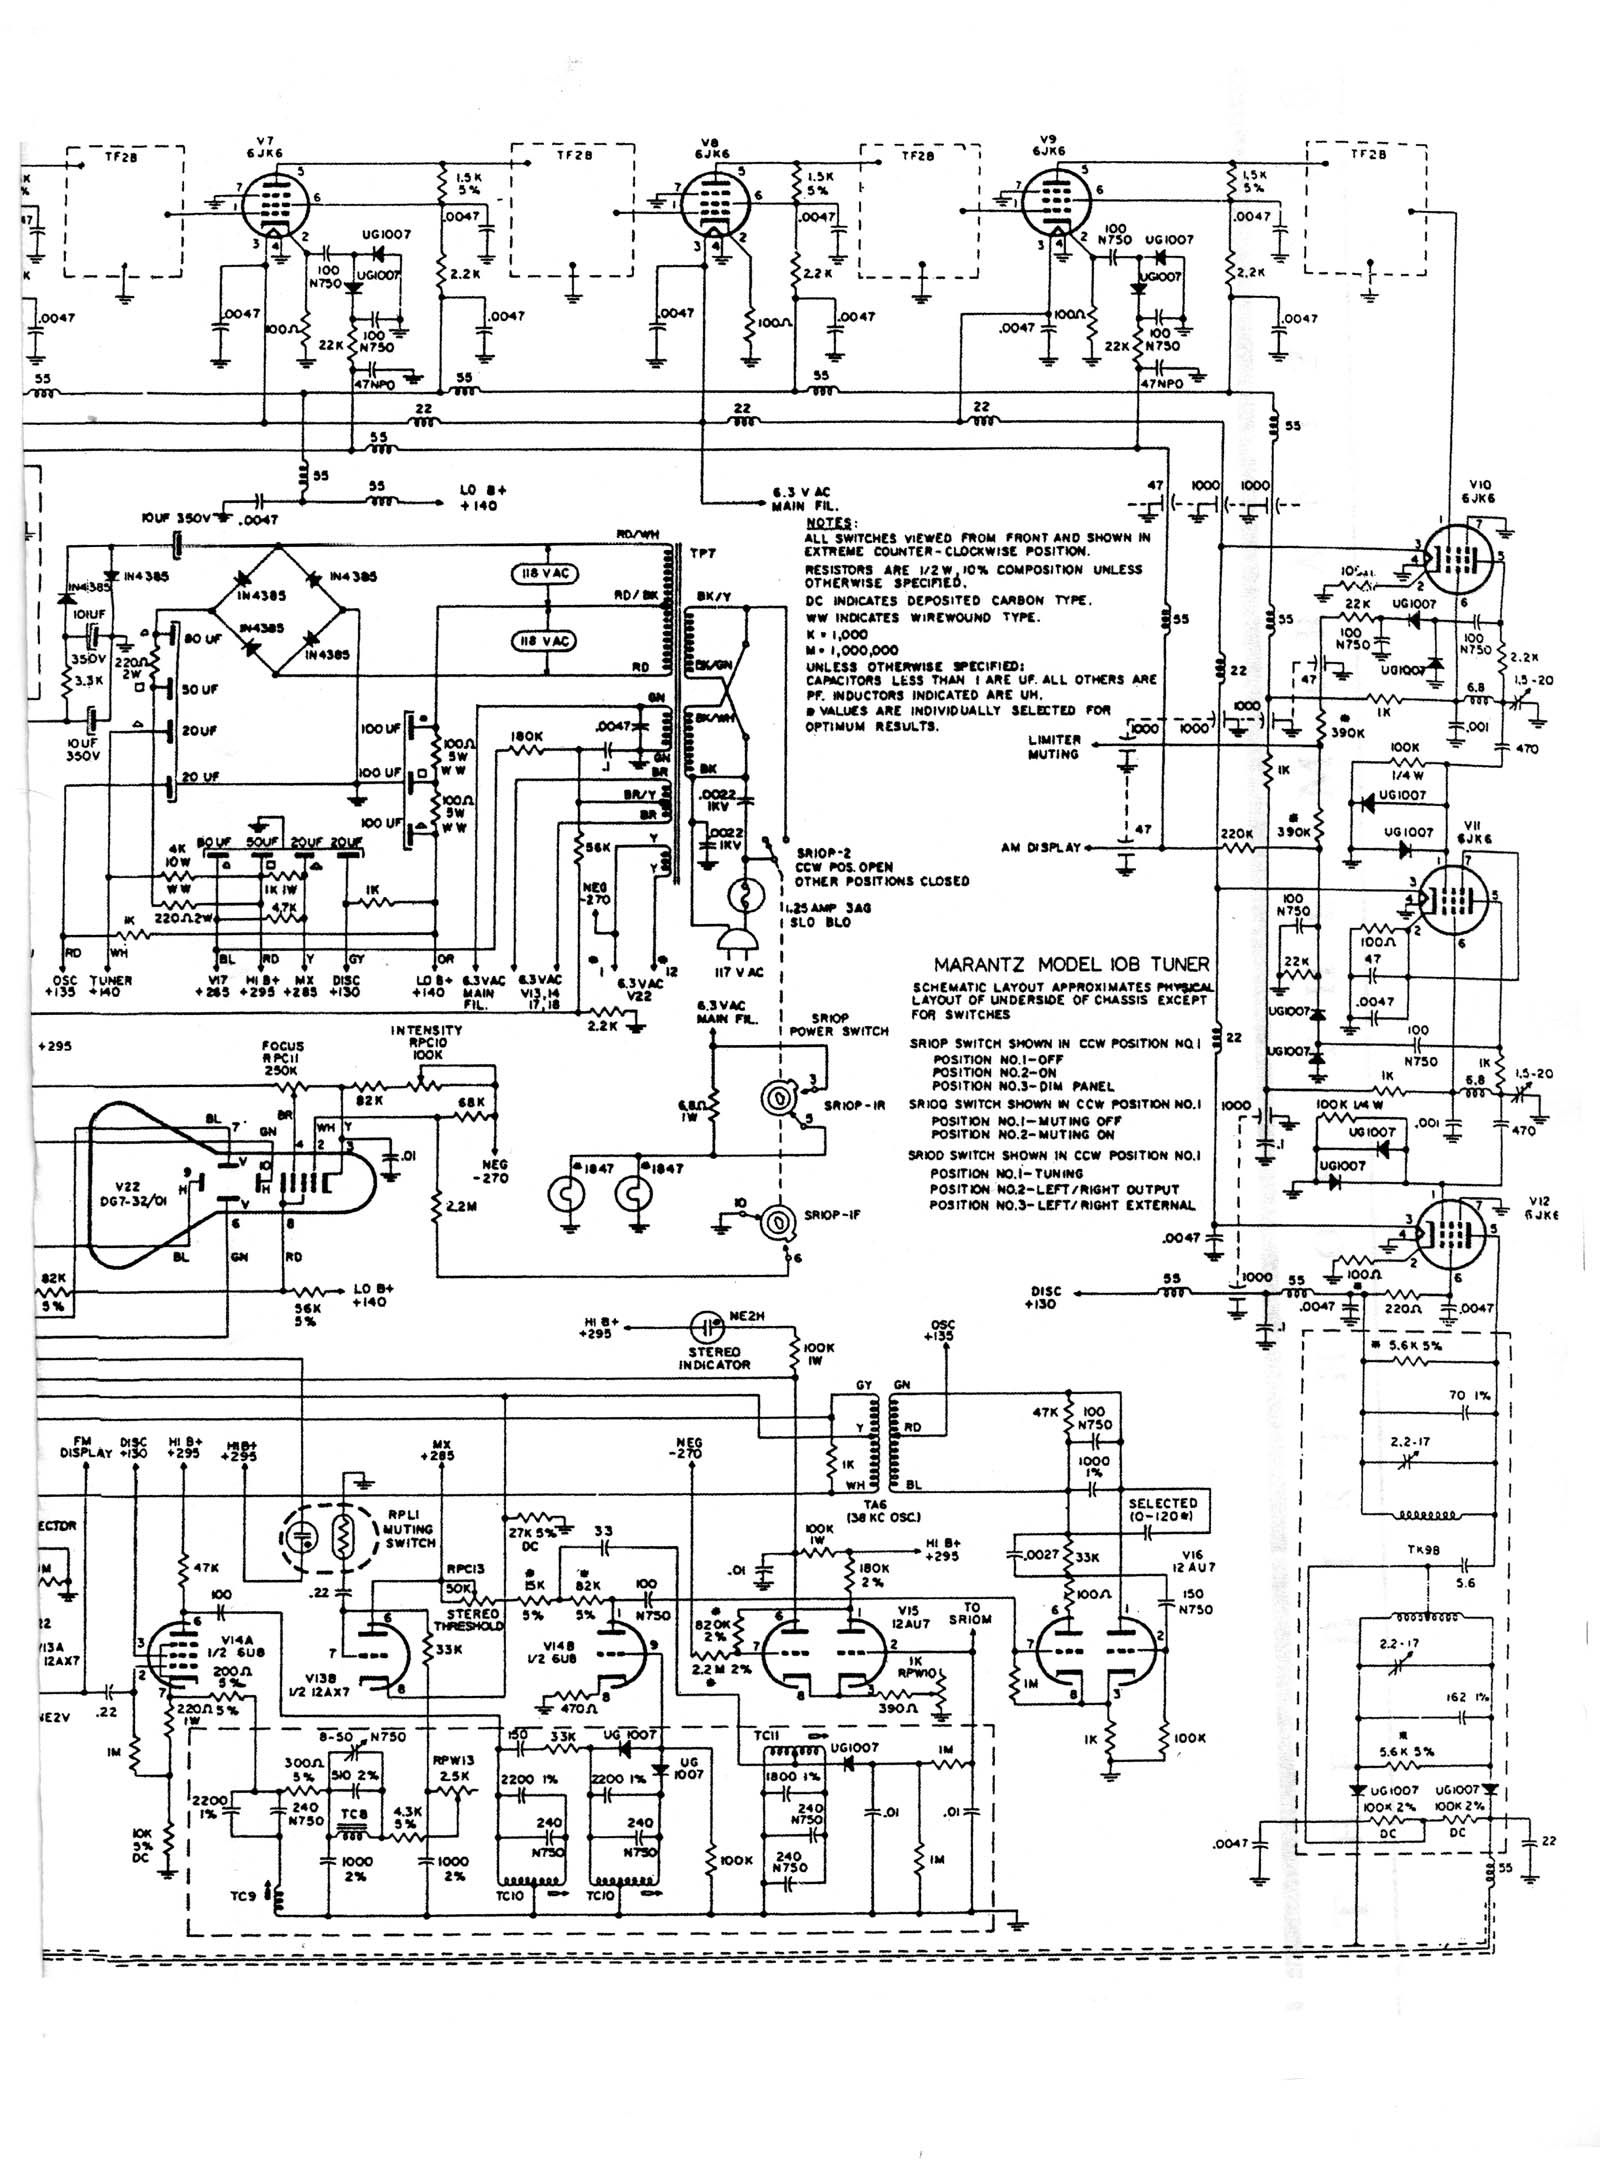 tuner information center marantz tuners RF Transmitter and Receiver Circuit Diagram marantz 10b 1964 650 photo schematic1 schematic2